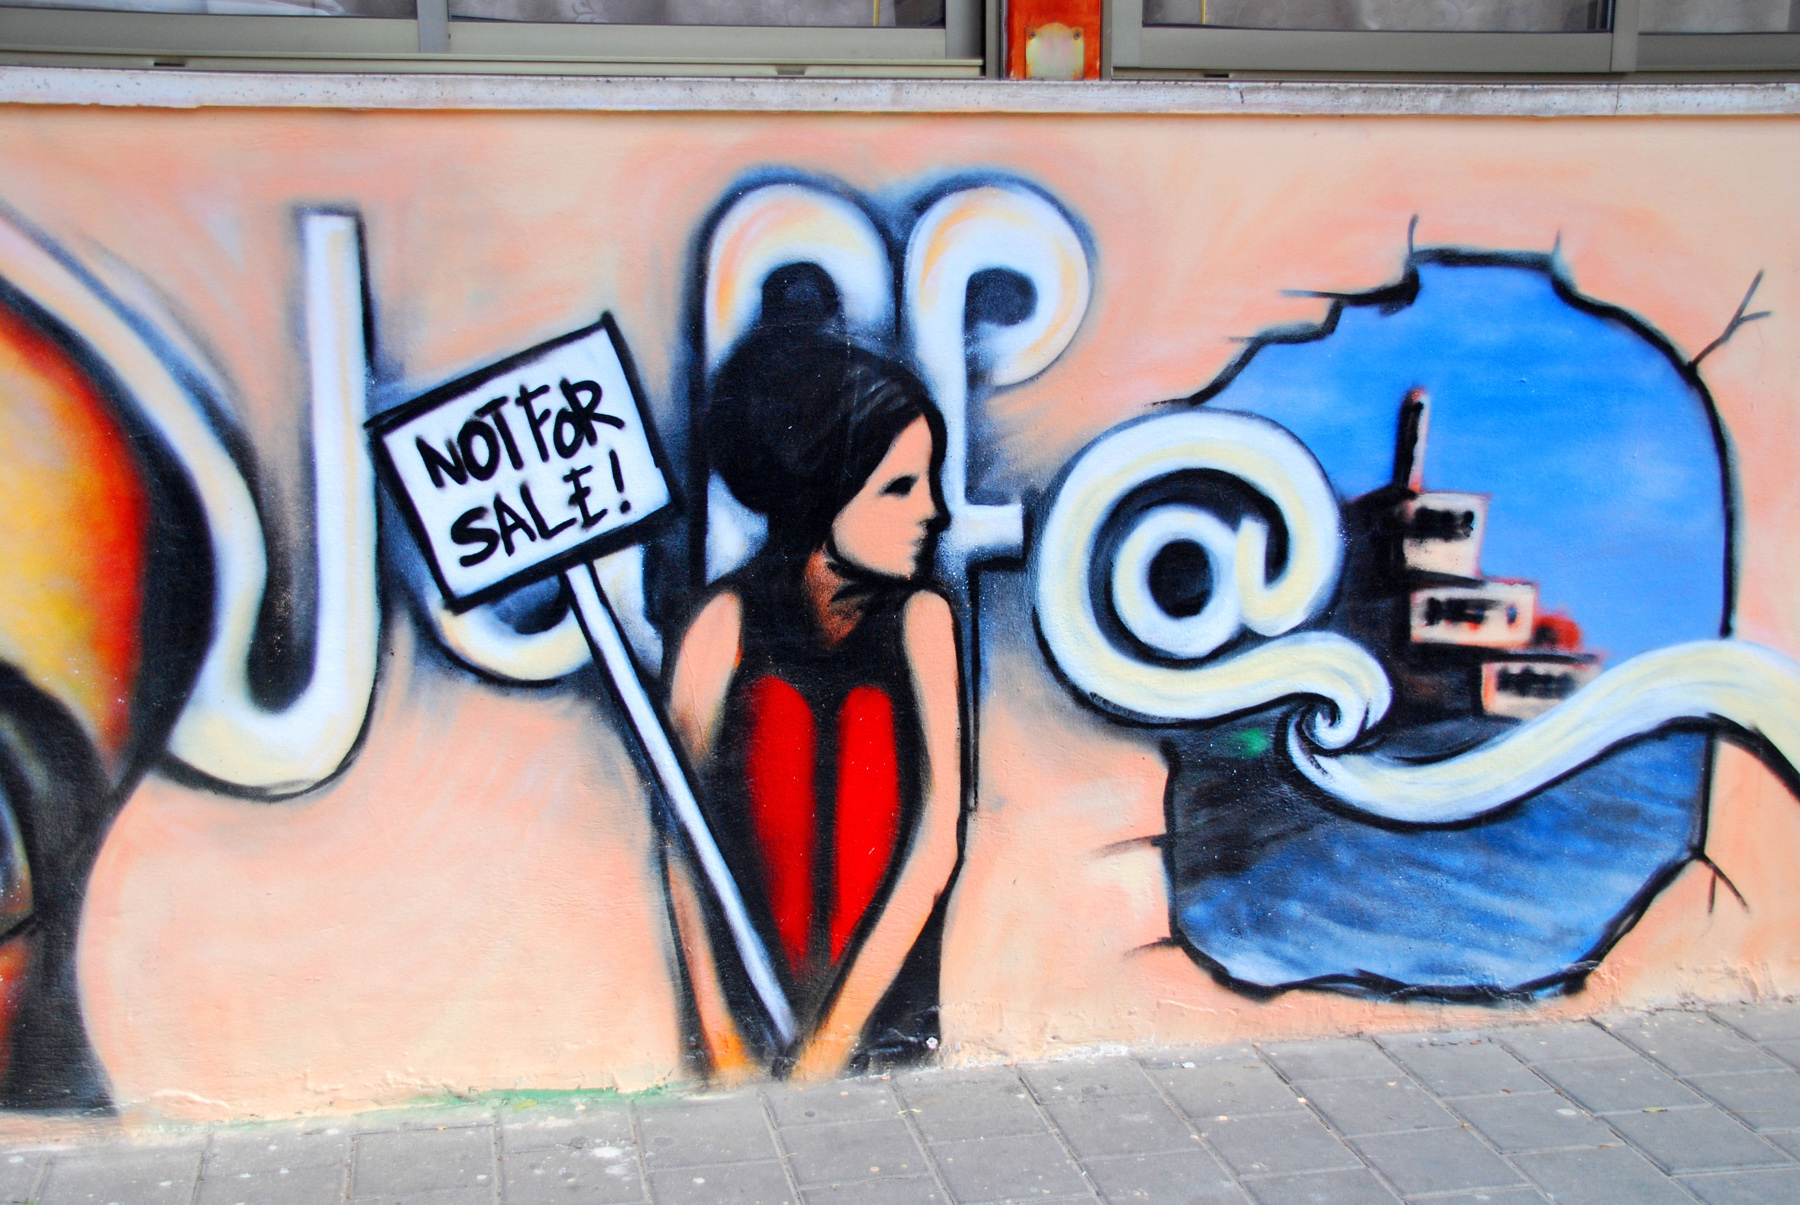 Graffiti in the Ajame neighbourhood of Jaffa, Israel, where currently about 500 Palestinian families face eviction orders